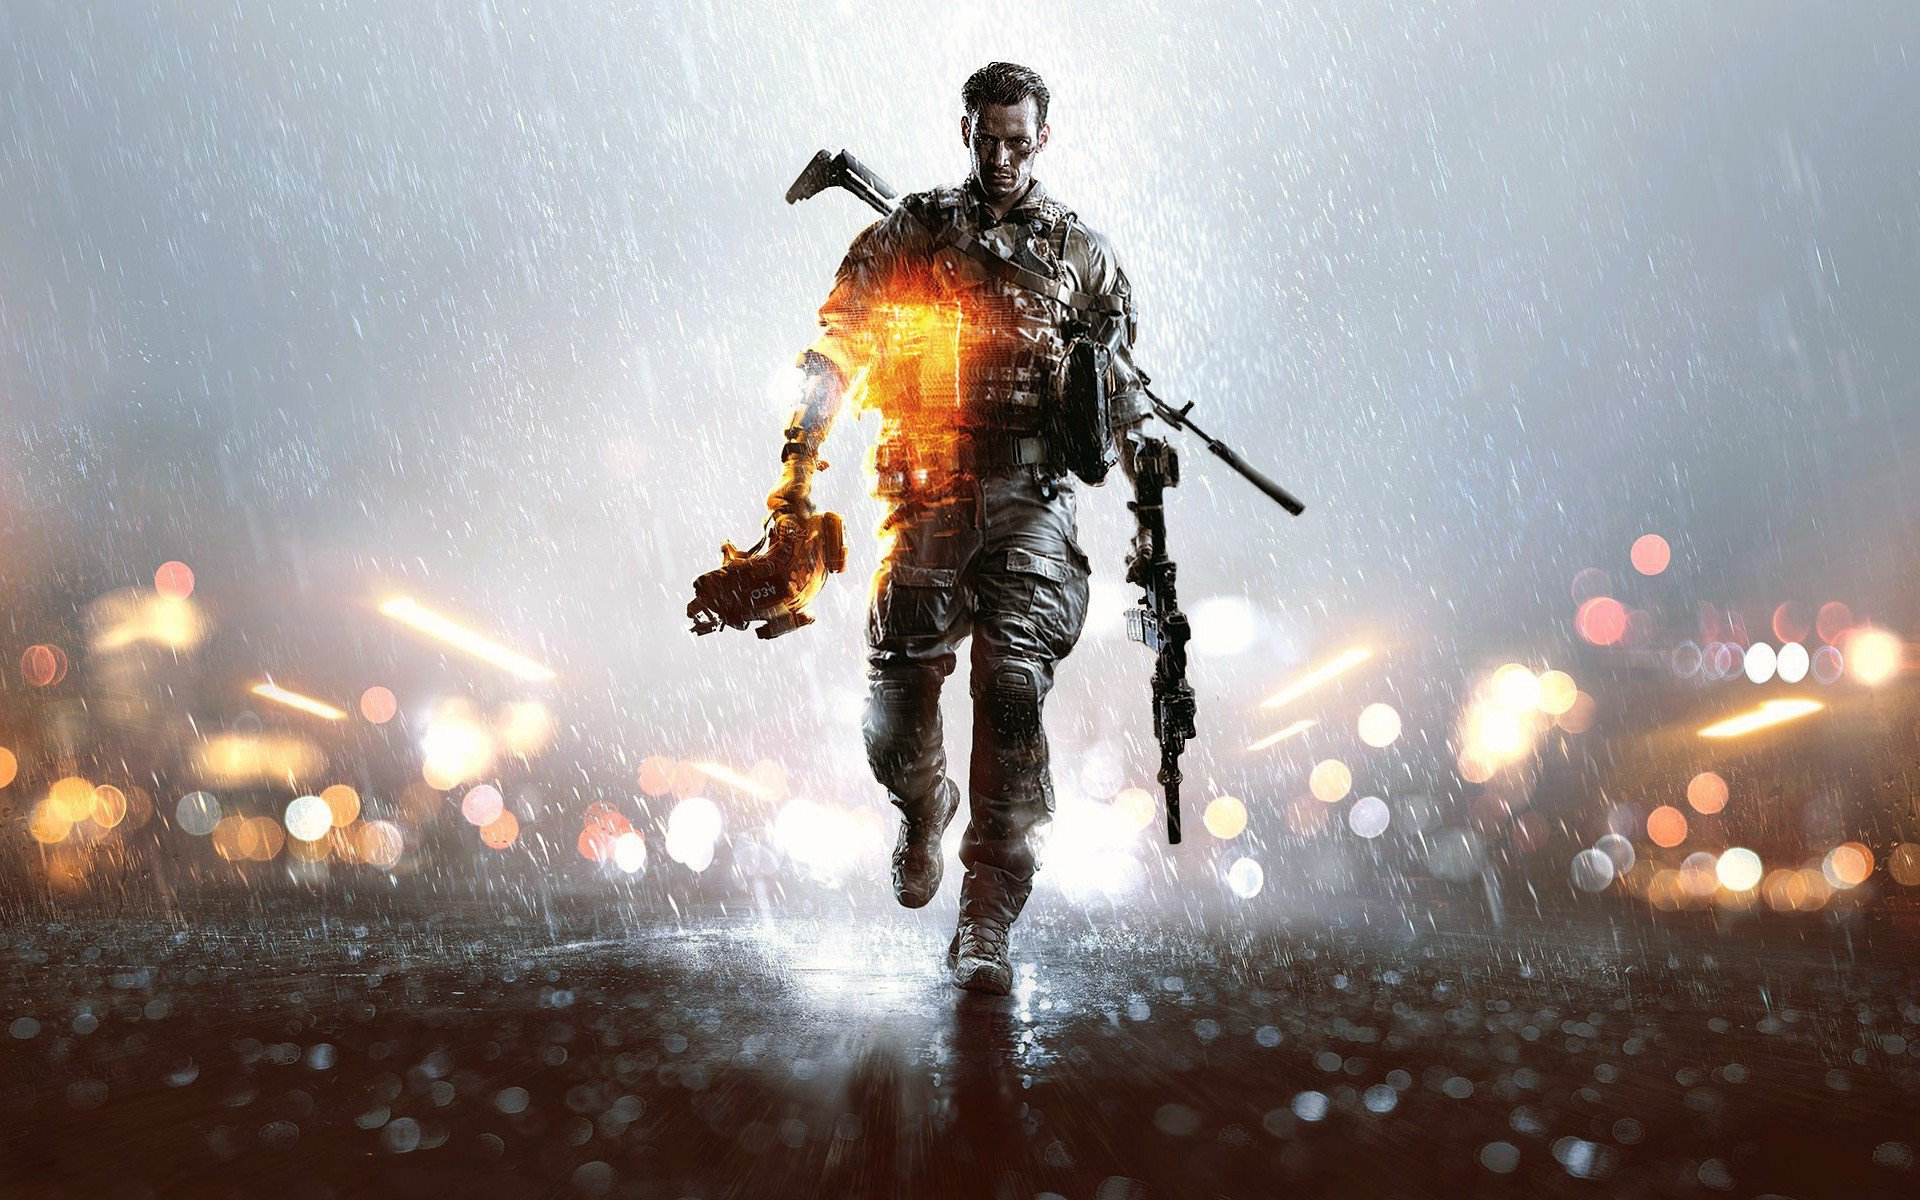 1536x2048 battlefield 4 wallpaper - photo #37